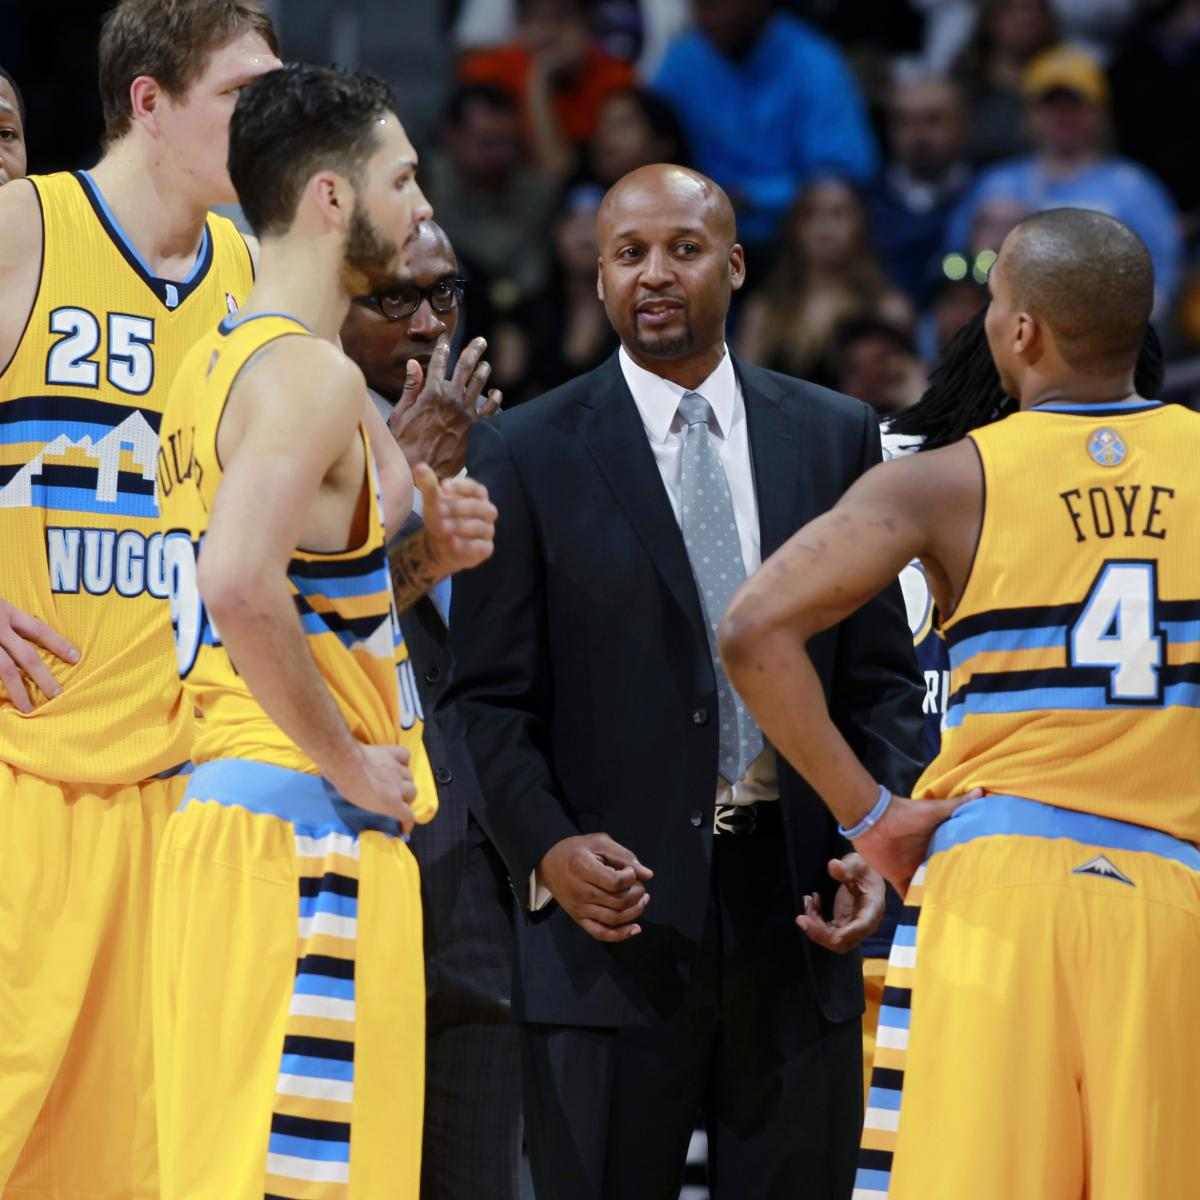 Nuggets Best Players: Which Denver Nuggets Player Has The Most Upside